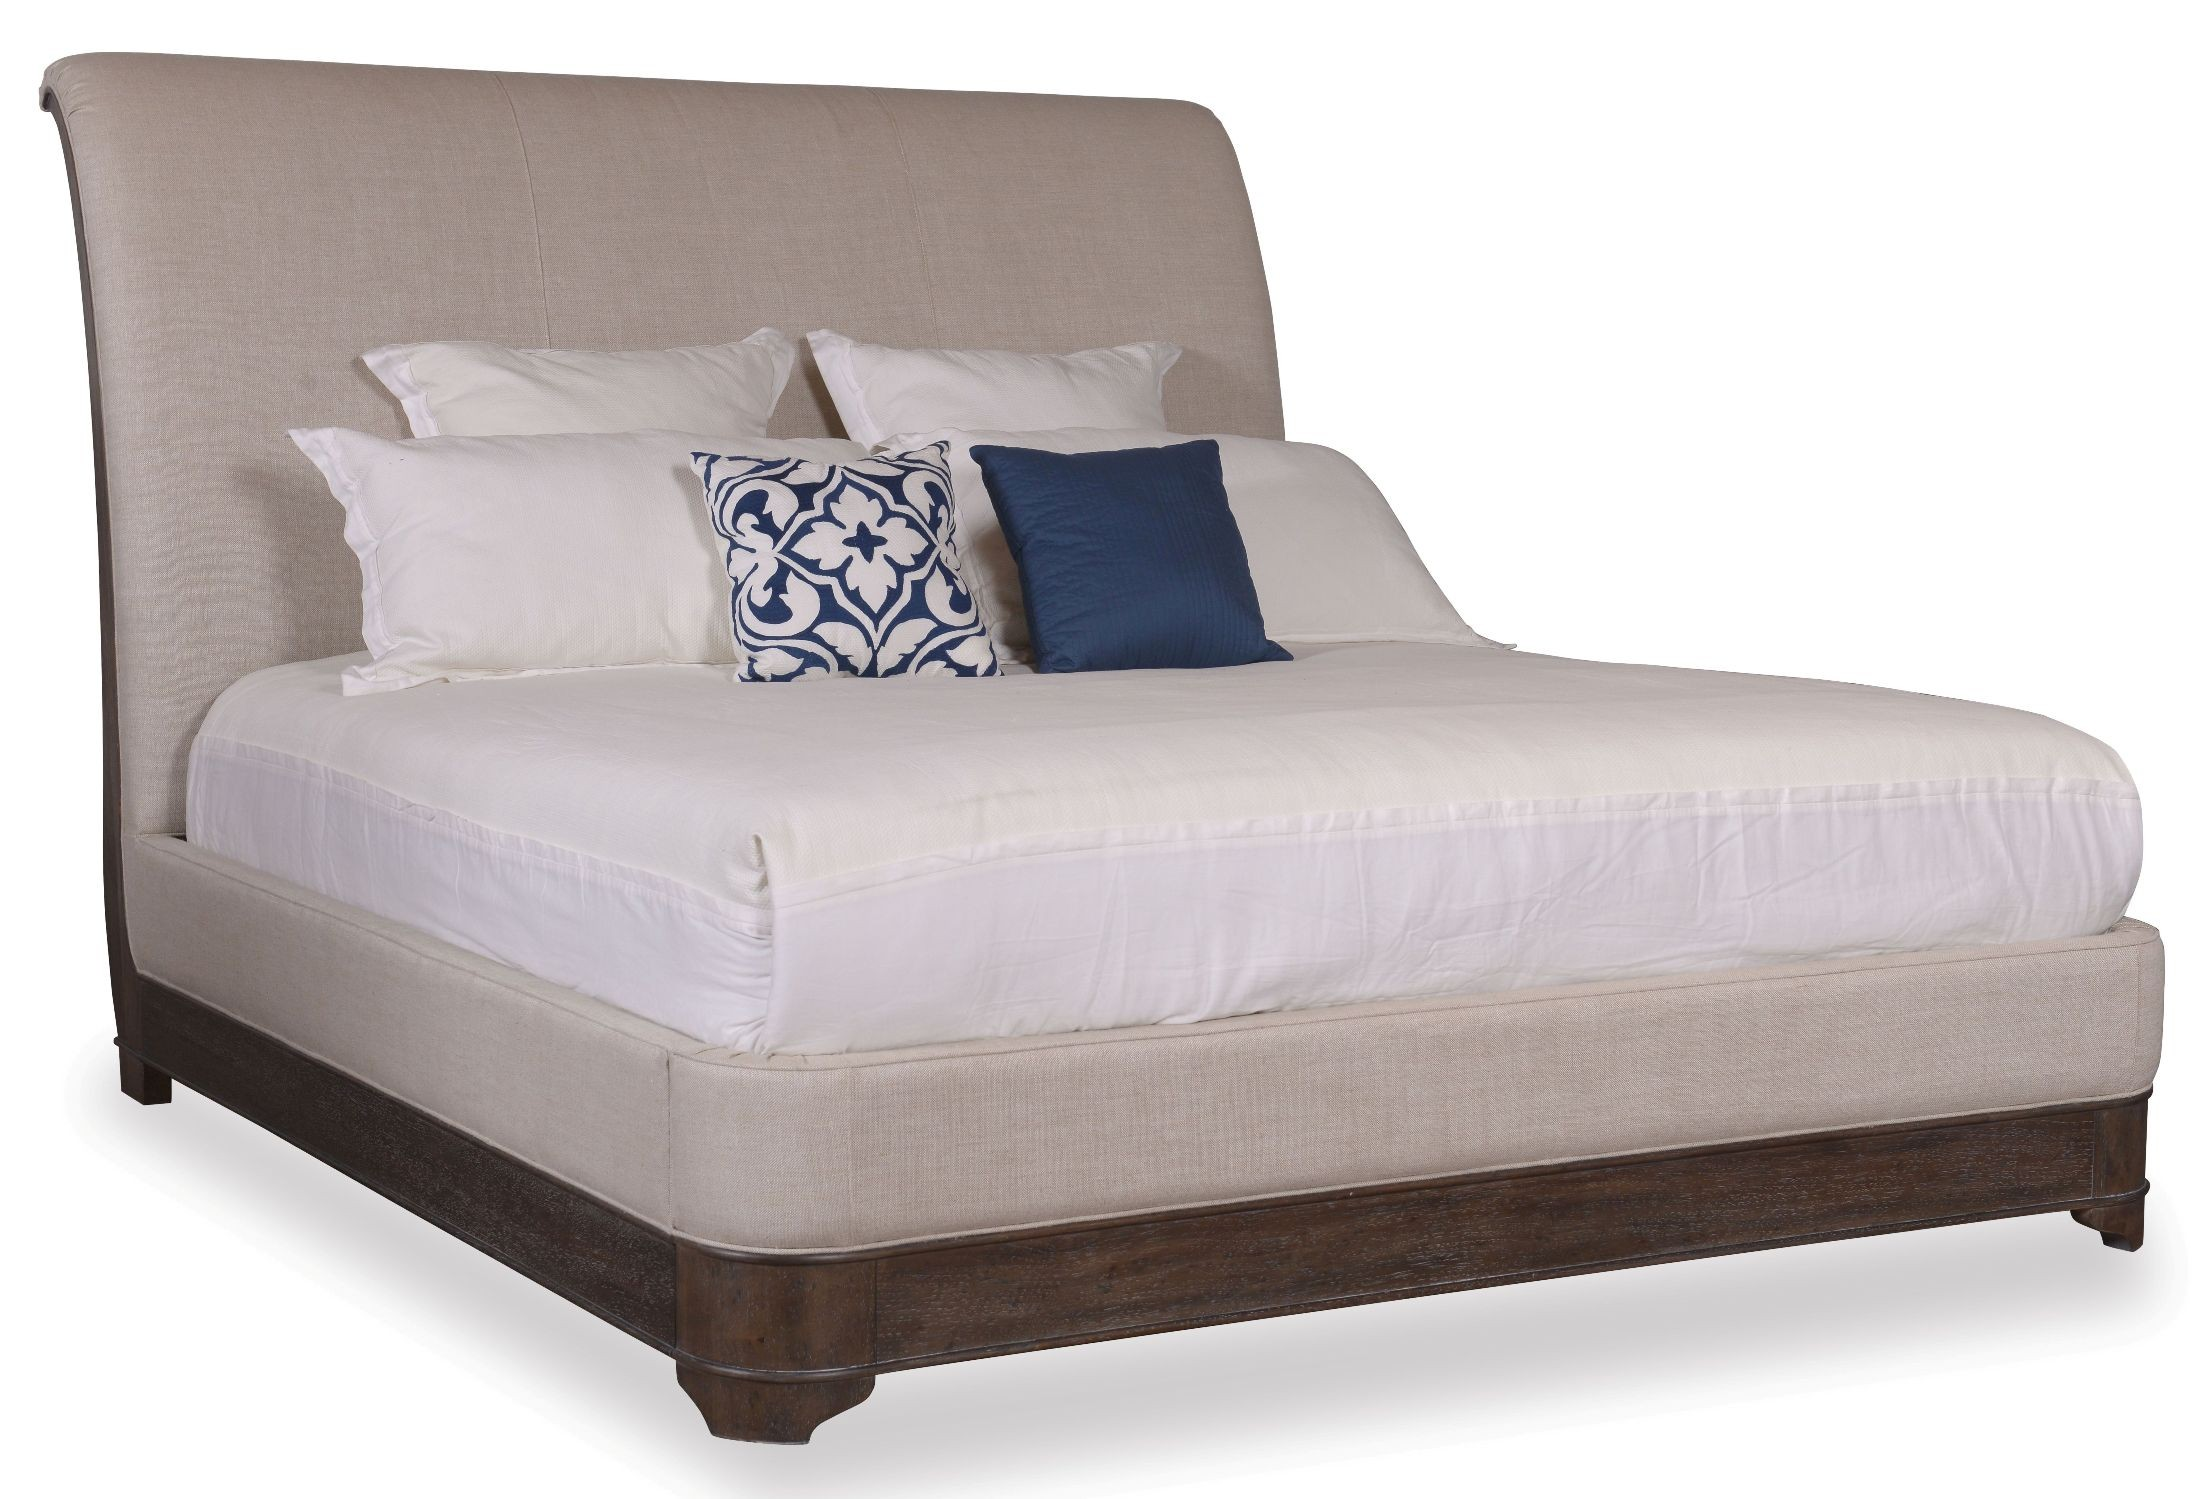 st germain king upholstered sleigh bed from art coleman furniture. Black Bedroom Furniture Sets. Home Design Ideas